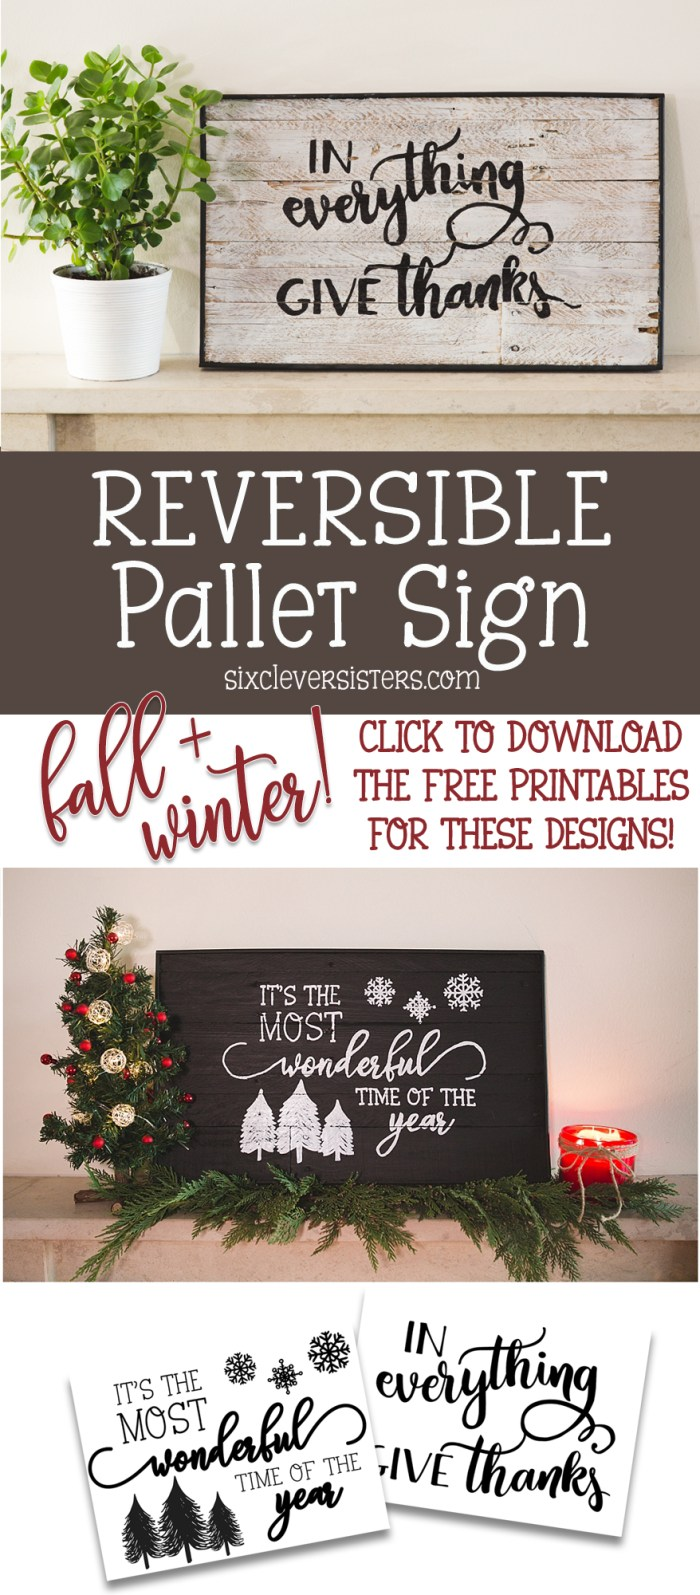 How to Make a Reversible Pallet Sign | Reversible Pallet Sign | DIY Pallet Sign Reversible | Rustic Holiday Sign | DIY Holiday Signs | Reversible Pallet Sign DIY | Making this reversible holiday sign for TWO seasons is easy! Included on the Six Clever Sisters blog is a video on how to transfer designs onto wood the easy way!